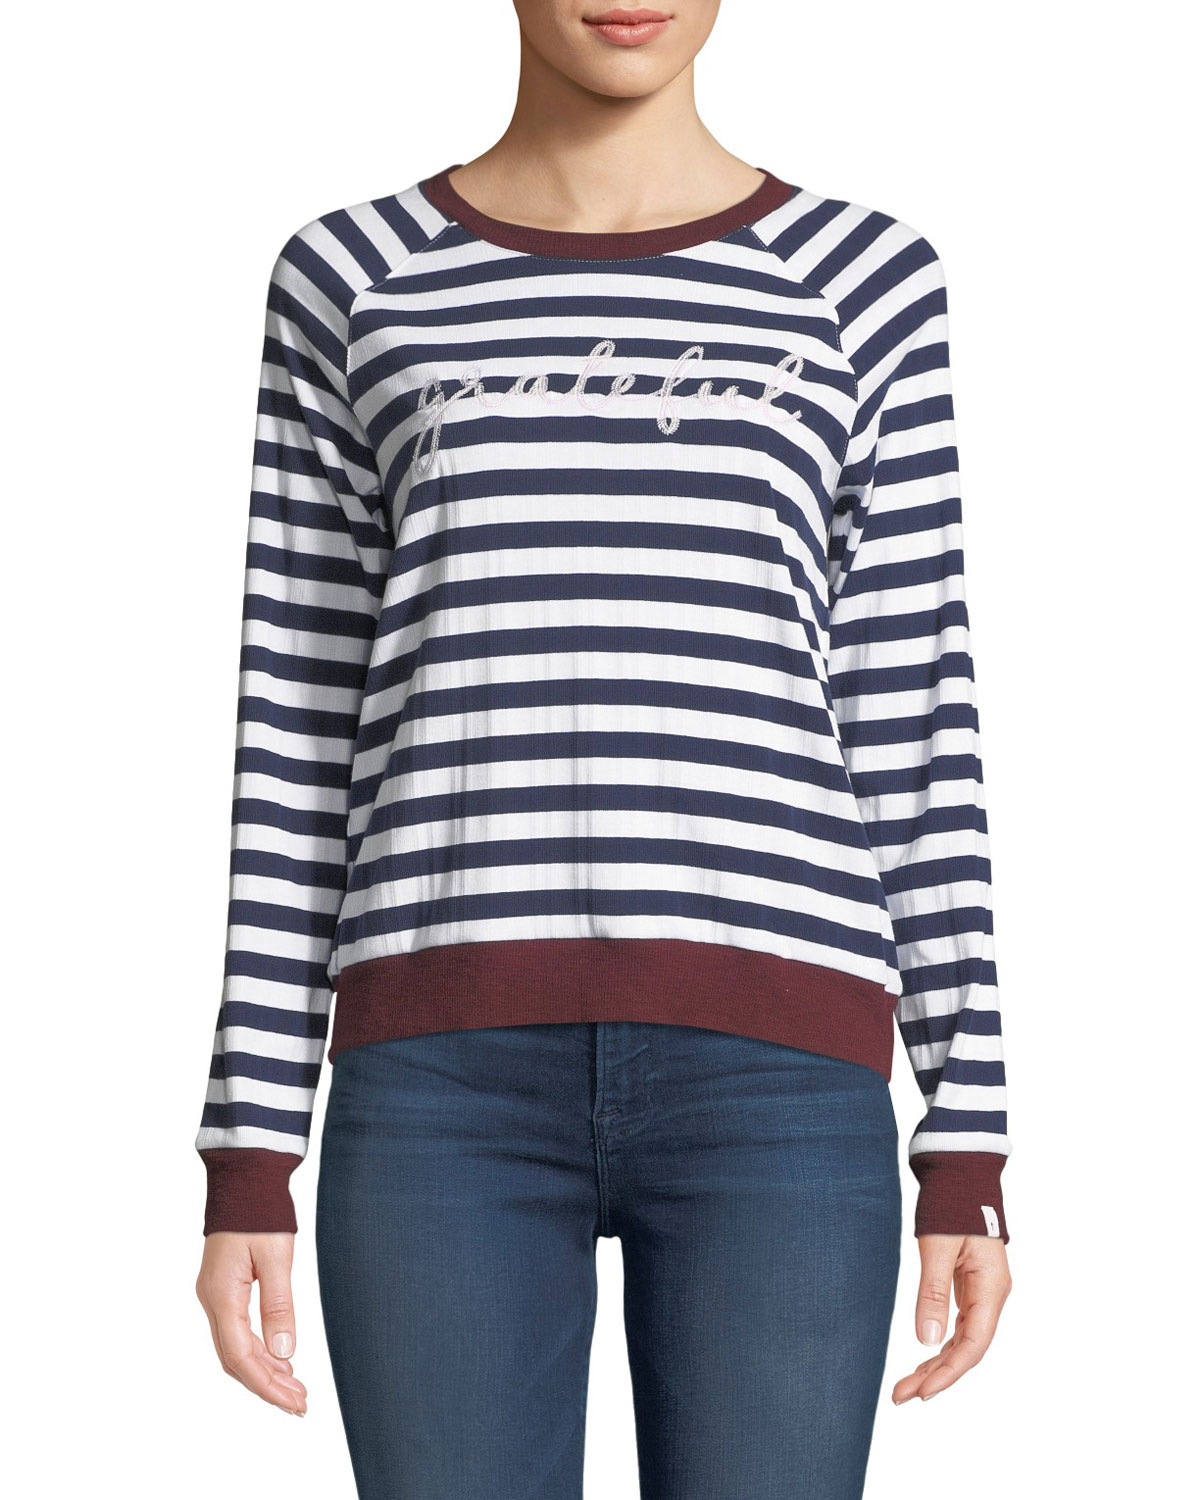 c3fcb1037e6 The Upside Goldie Striped Embroidered Long-Sleeve Tee